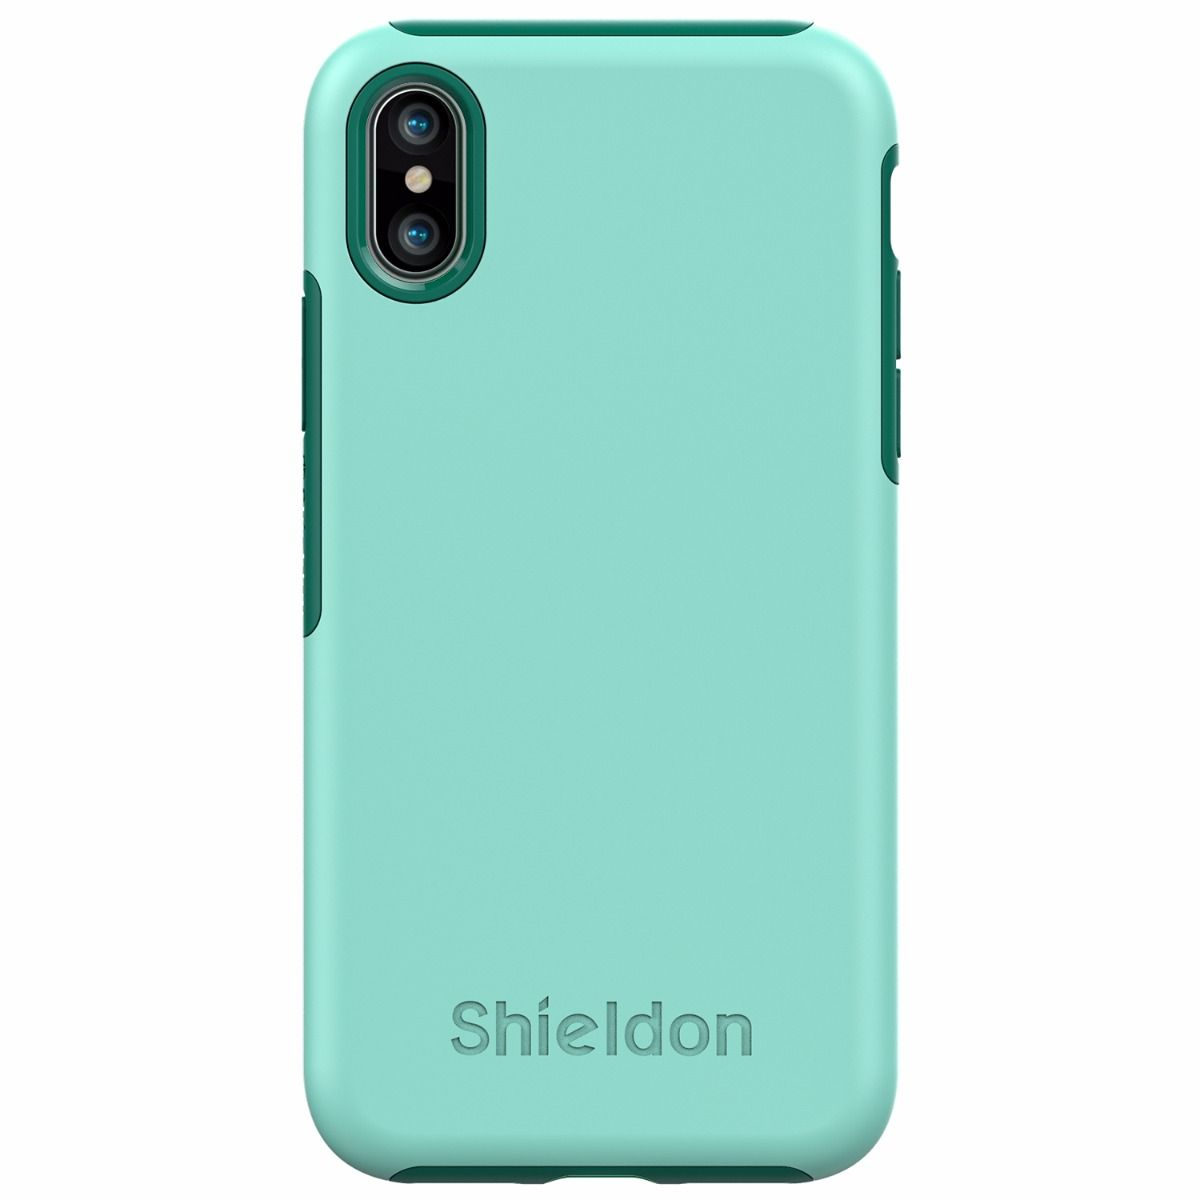 huge discount 7cb46 8ffbd SHIELDON iPhone XS Case - Drop Protection Case for Apple iPhone X / iPhone  10 - Plateau Series